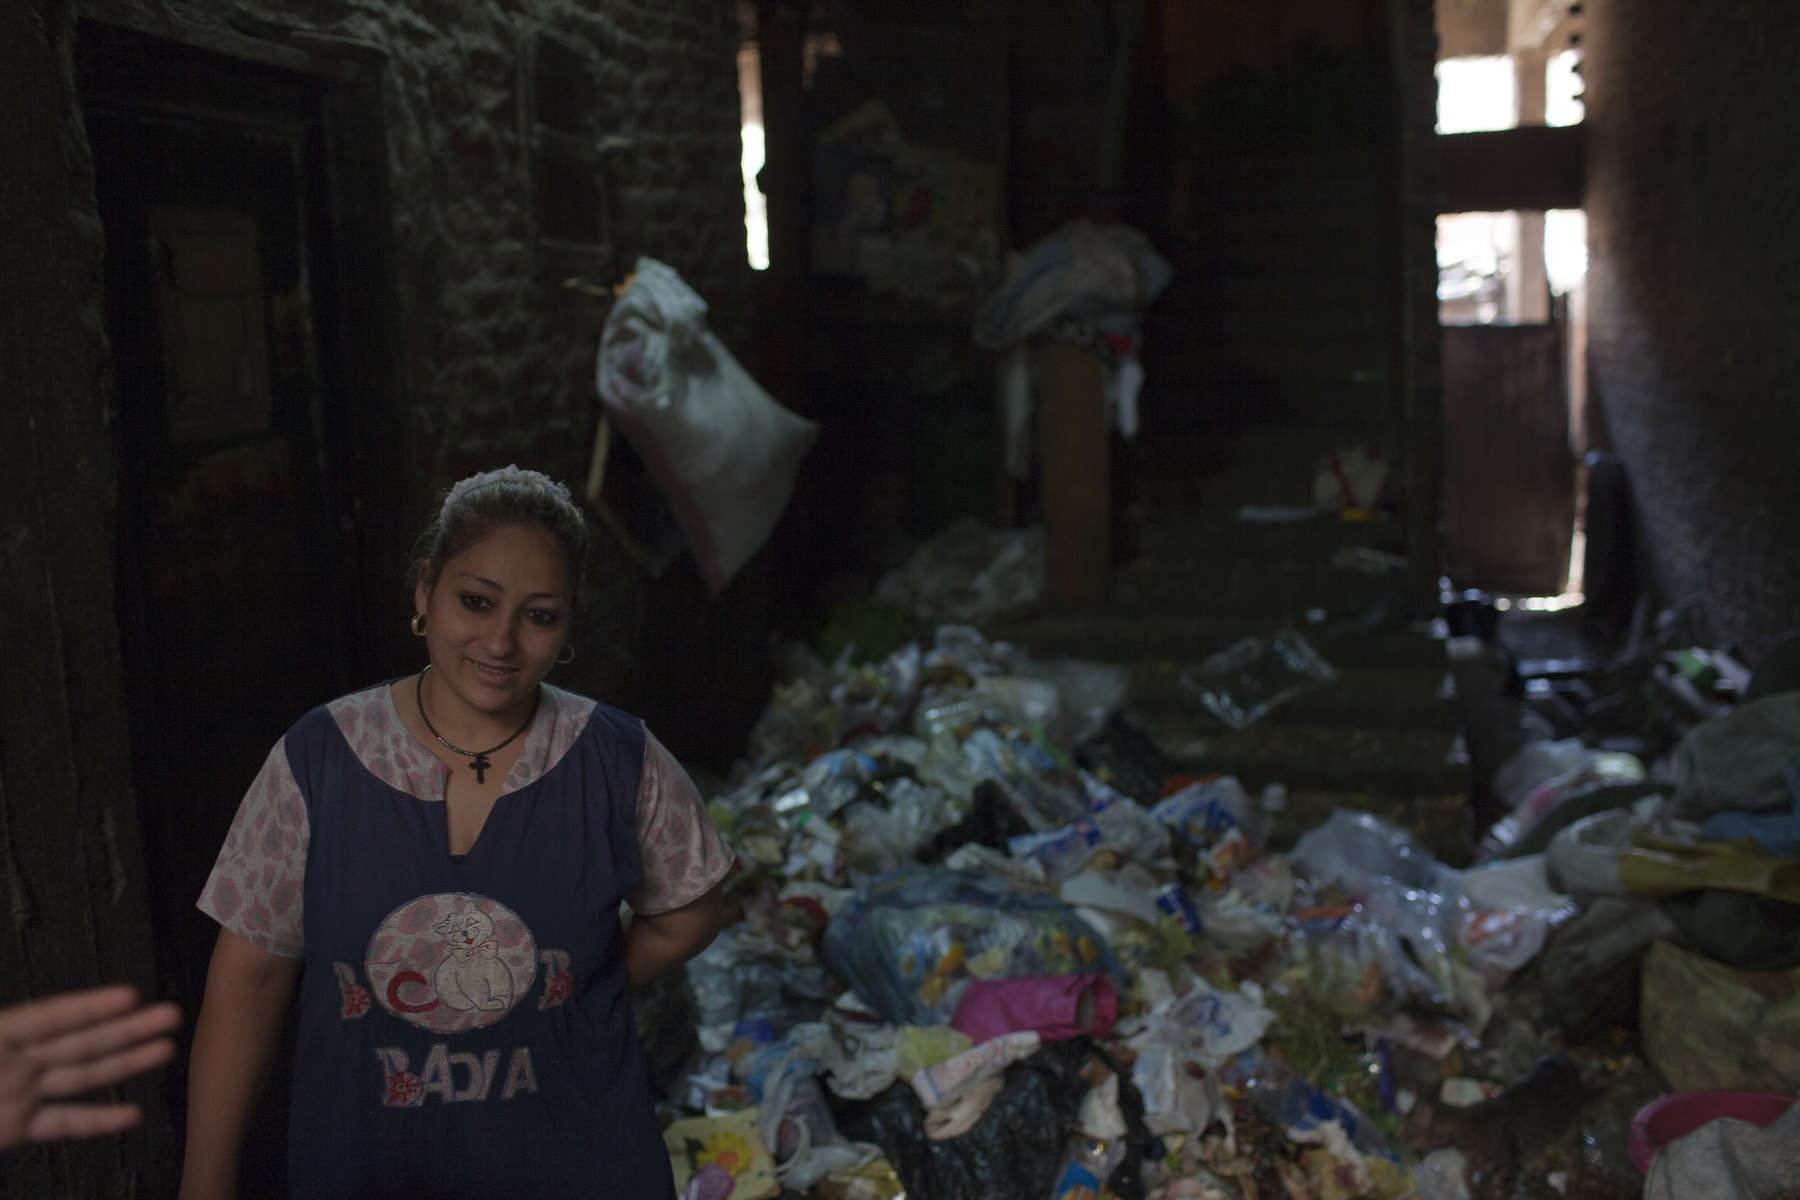 "A woman in the ground floor of her home in Moqqatam prepares to sort through garbage for useful items to recycle.Moqqatam is a suburb on the edge of Cairo and home to a people known as the Zabaleen, said to be the world's greatest waste recyclers. The Zabaleen, which means plainly enough, ""the garbage collectors"", pick up around 4,000 tons of Cairo's waste each day. American researchers have shown that the Zabaleen recycle 85% of this garbage into something useful: a higher rate than anywhere else on the planet. The men do two shifts leaving about 4am and again around 9am. The rubbish is taken back to Moqqatam for the women to sit in and sort through. The organic waste is fed to livestock (the Zabaleen are originally swine herders), the rest sorted for recycling. The future of the Zabaleen is uncertain: if the Cairo authorities get their way, this community of around 25,000 Coptic Christians living in a Muslim country will be gone, and with it, their unique lifestyle."